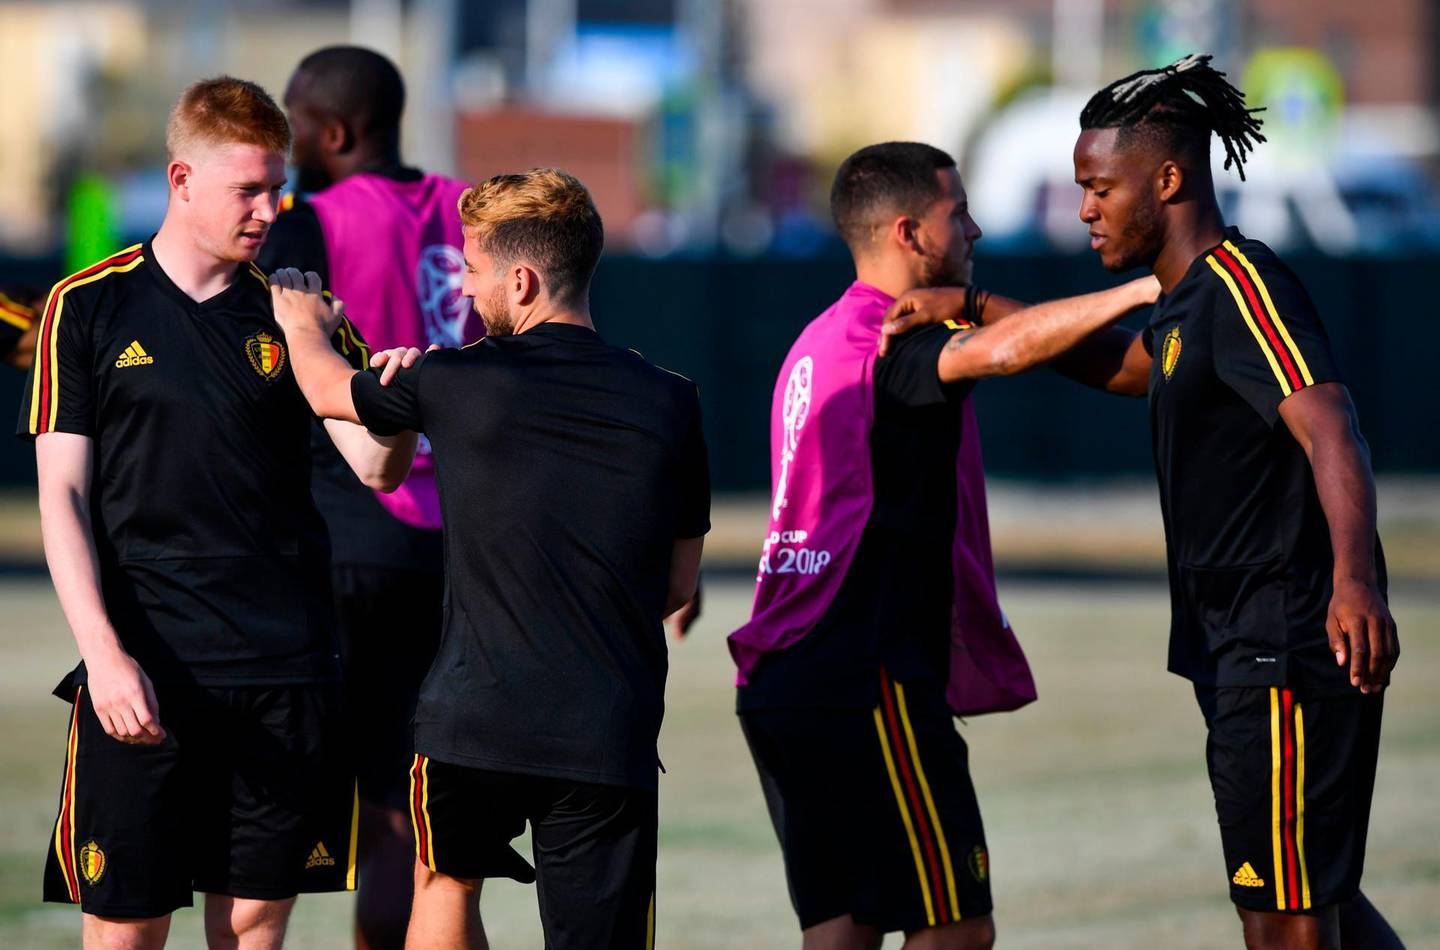 CORRECTION / L to R, Belgium's midfielder Kevin De Bruyne, Belgium's defender Thomas Meunier, Belgium's forward Eden Hazard and Belgium's forward Michy Batshuayi stretch during a training session at the Olympic Park Arena in Sochi on June 17, 2018, on the eve of the Russia 2018 World Cup Group G football match between Belgium and Panama. / AFP / Nelson Almeida